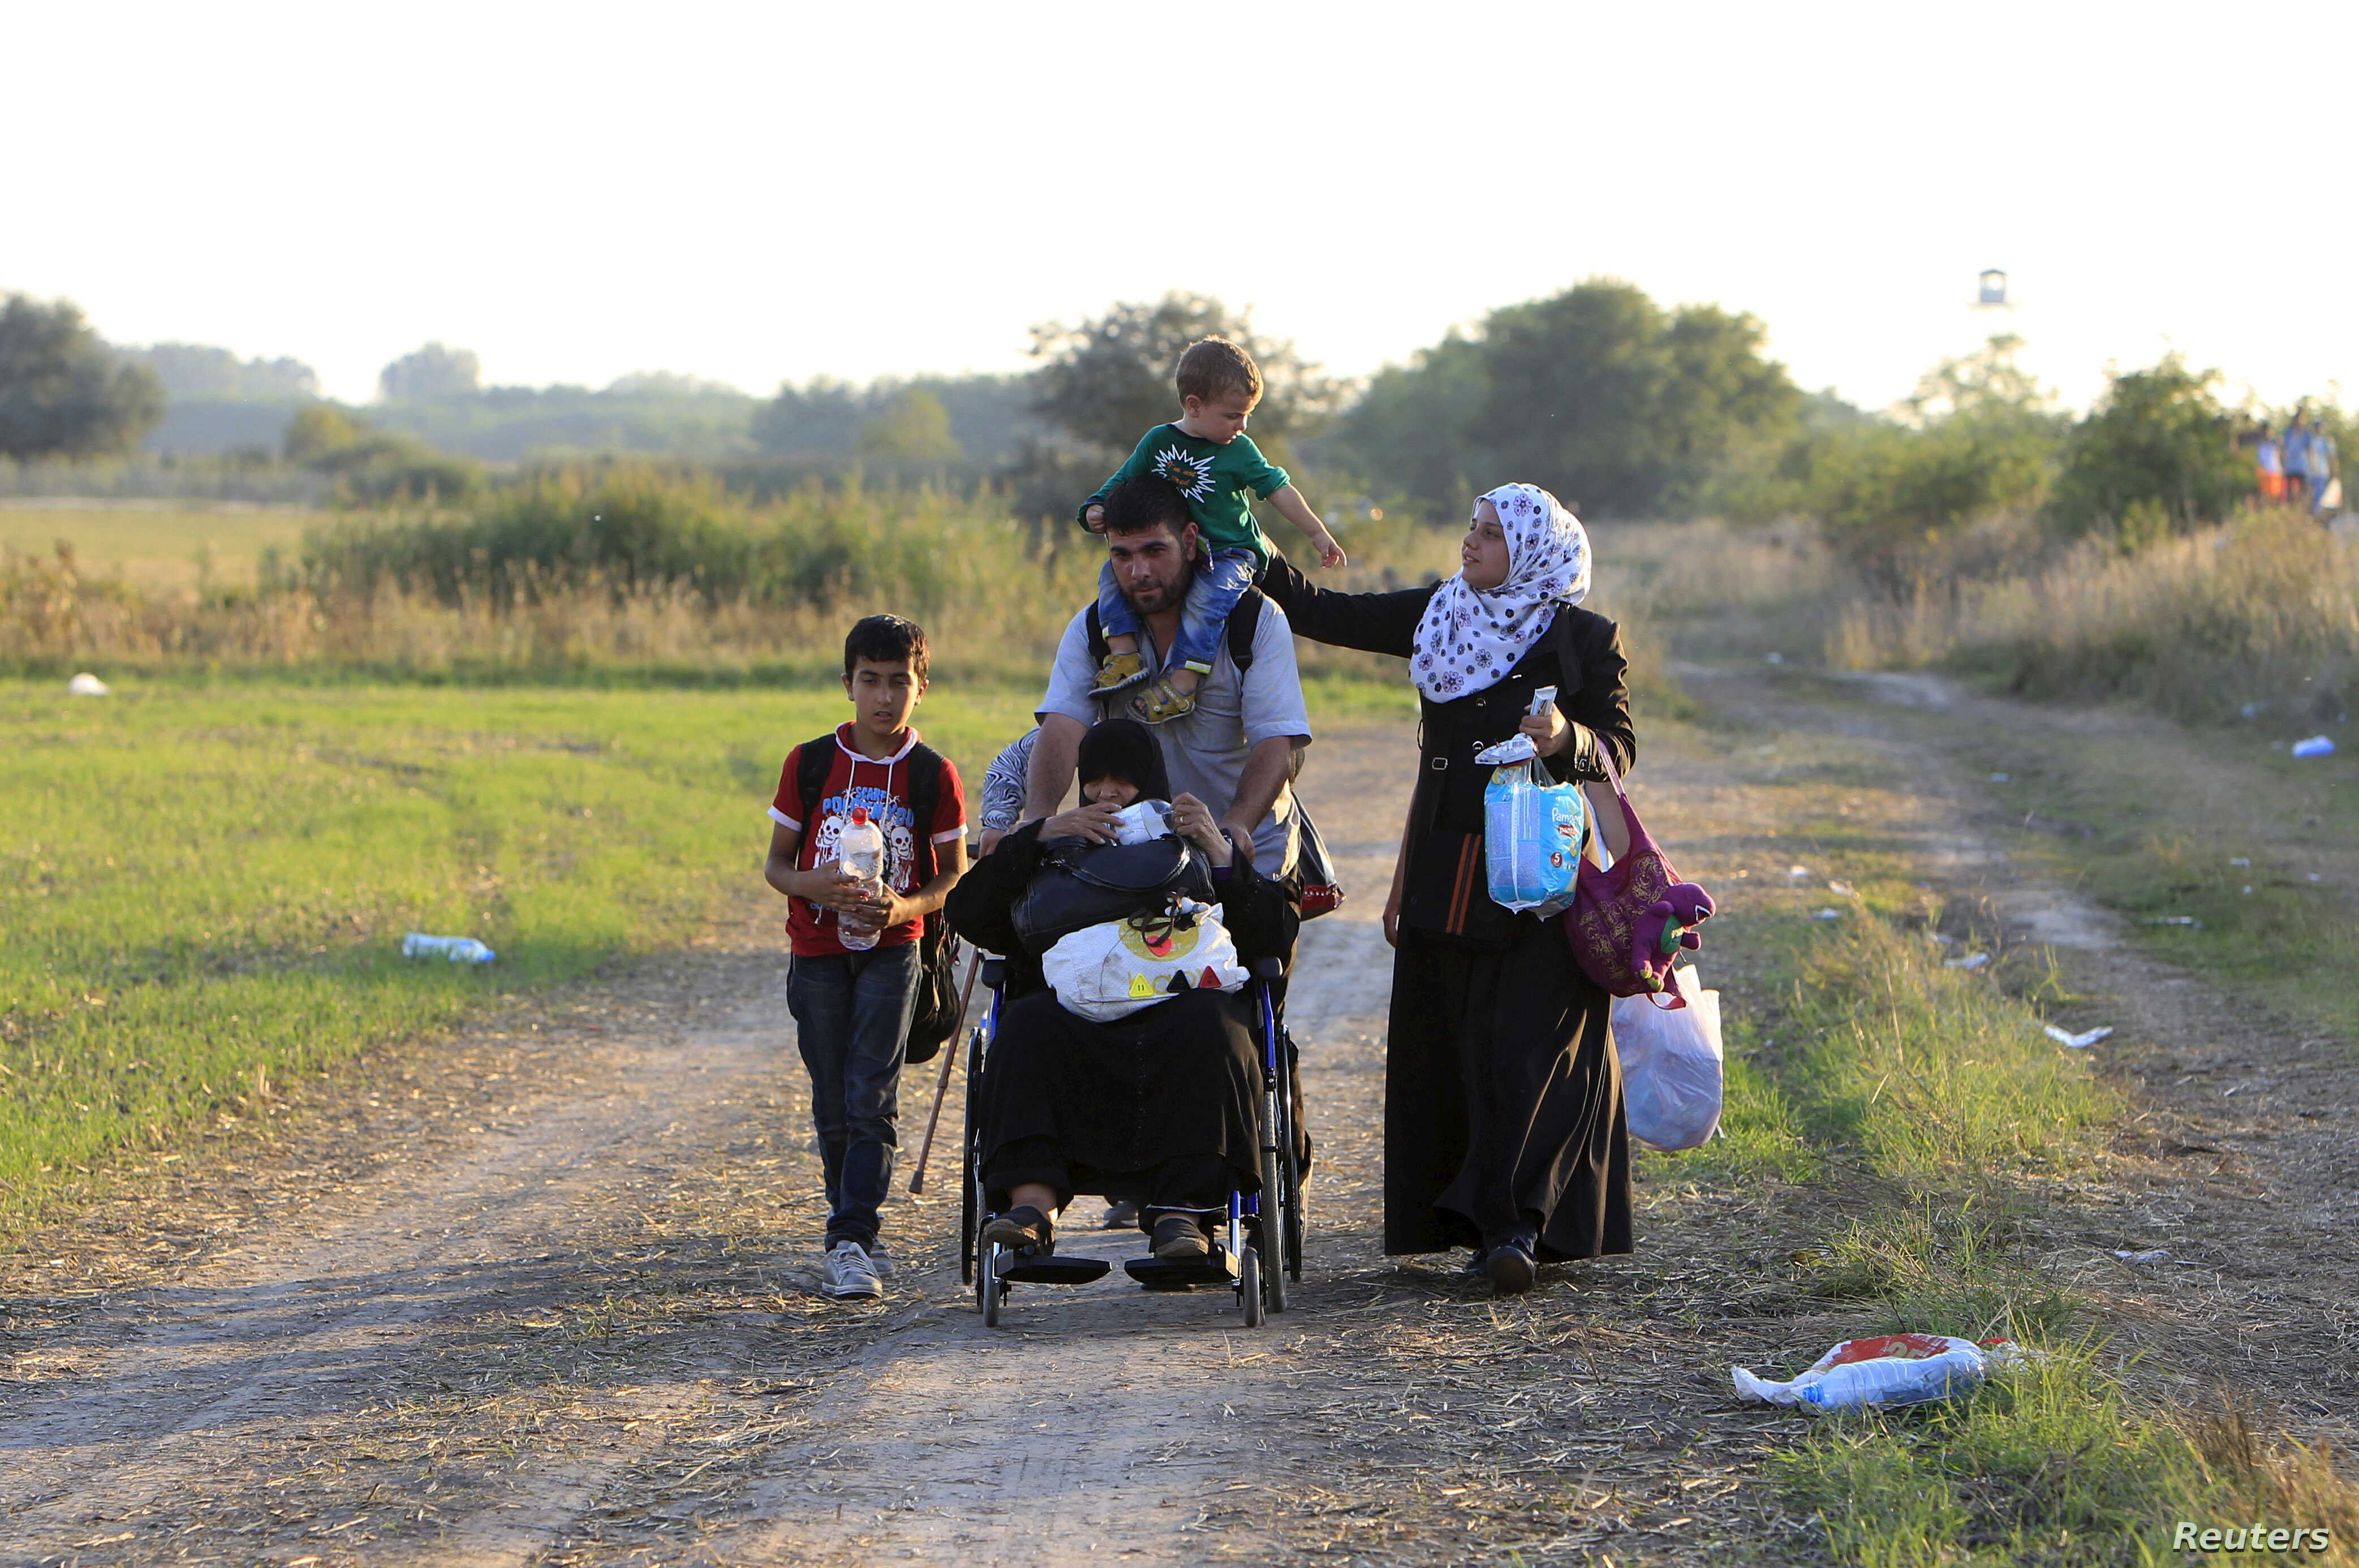 Syrian migrants travel along a road after crossing into Hungary from the border with Serbia near Roszke, Hungary, Aug. 29, 2015.